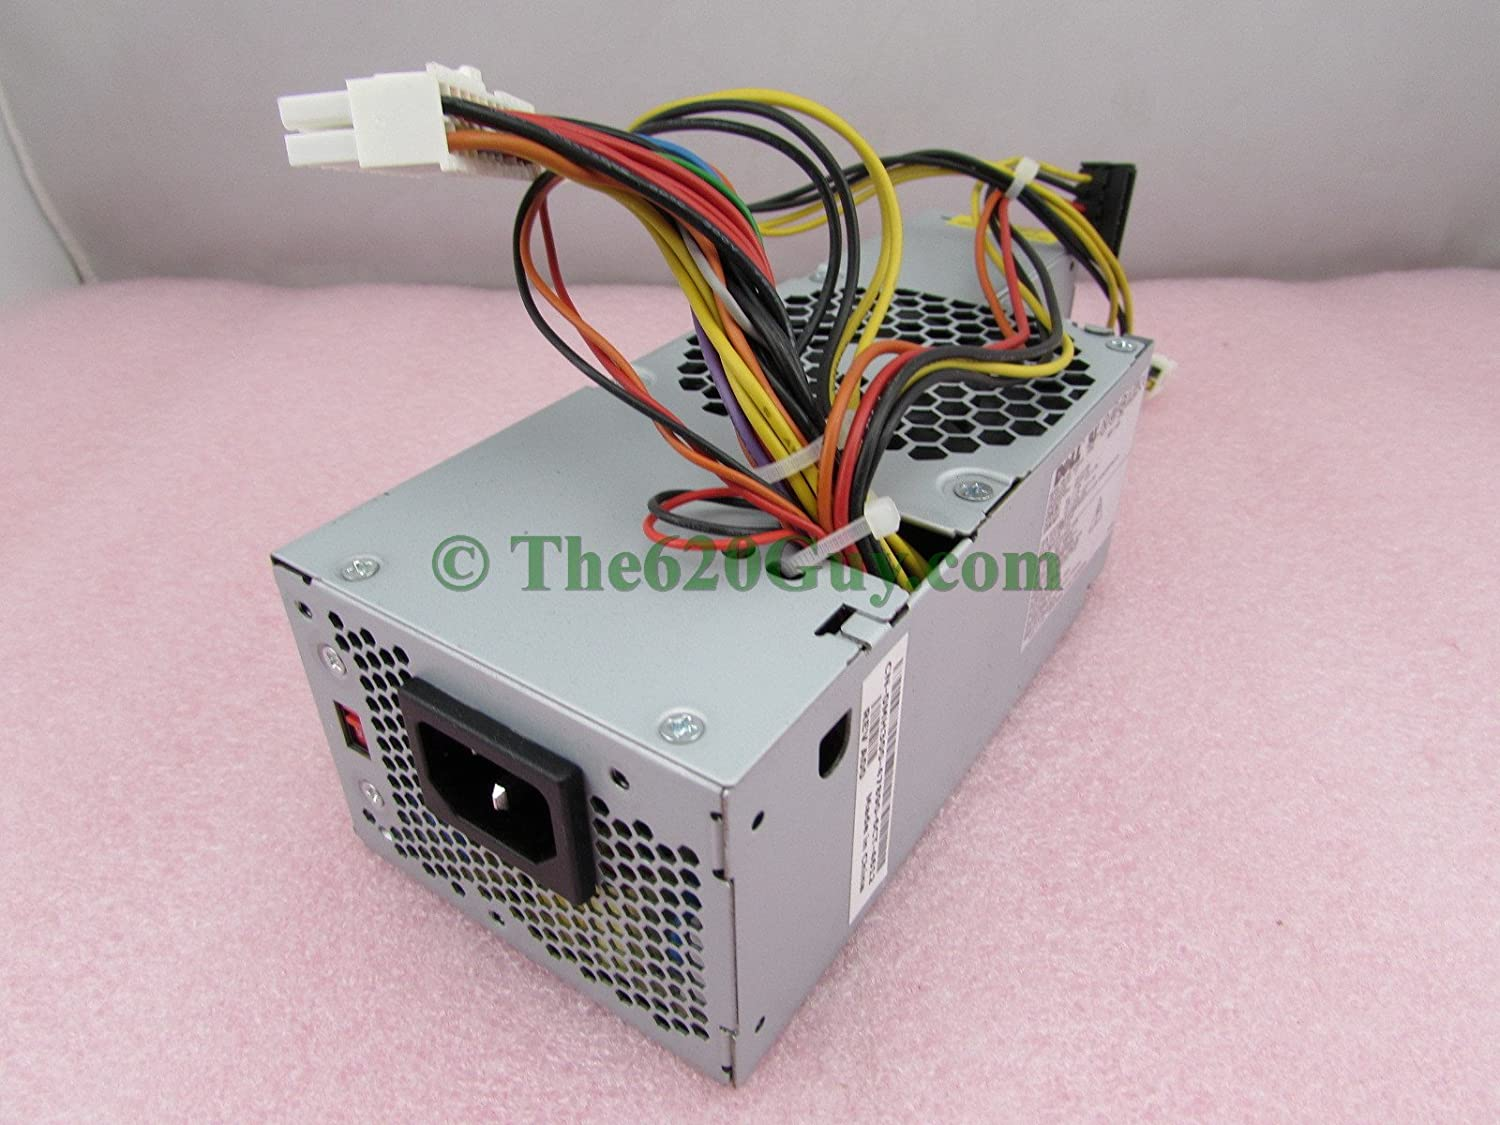 81NmZcHveJL._SL1500_ amazon com dell 275w 24 pin 4 pin 12v sff atx power supply mh300  at gsmportal.co